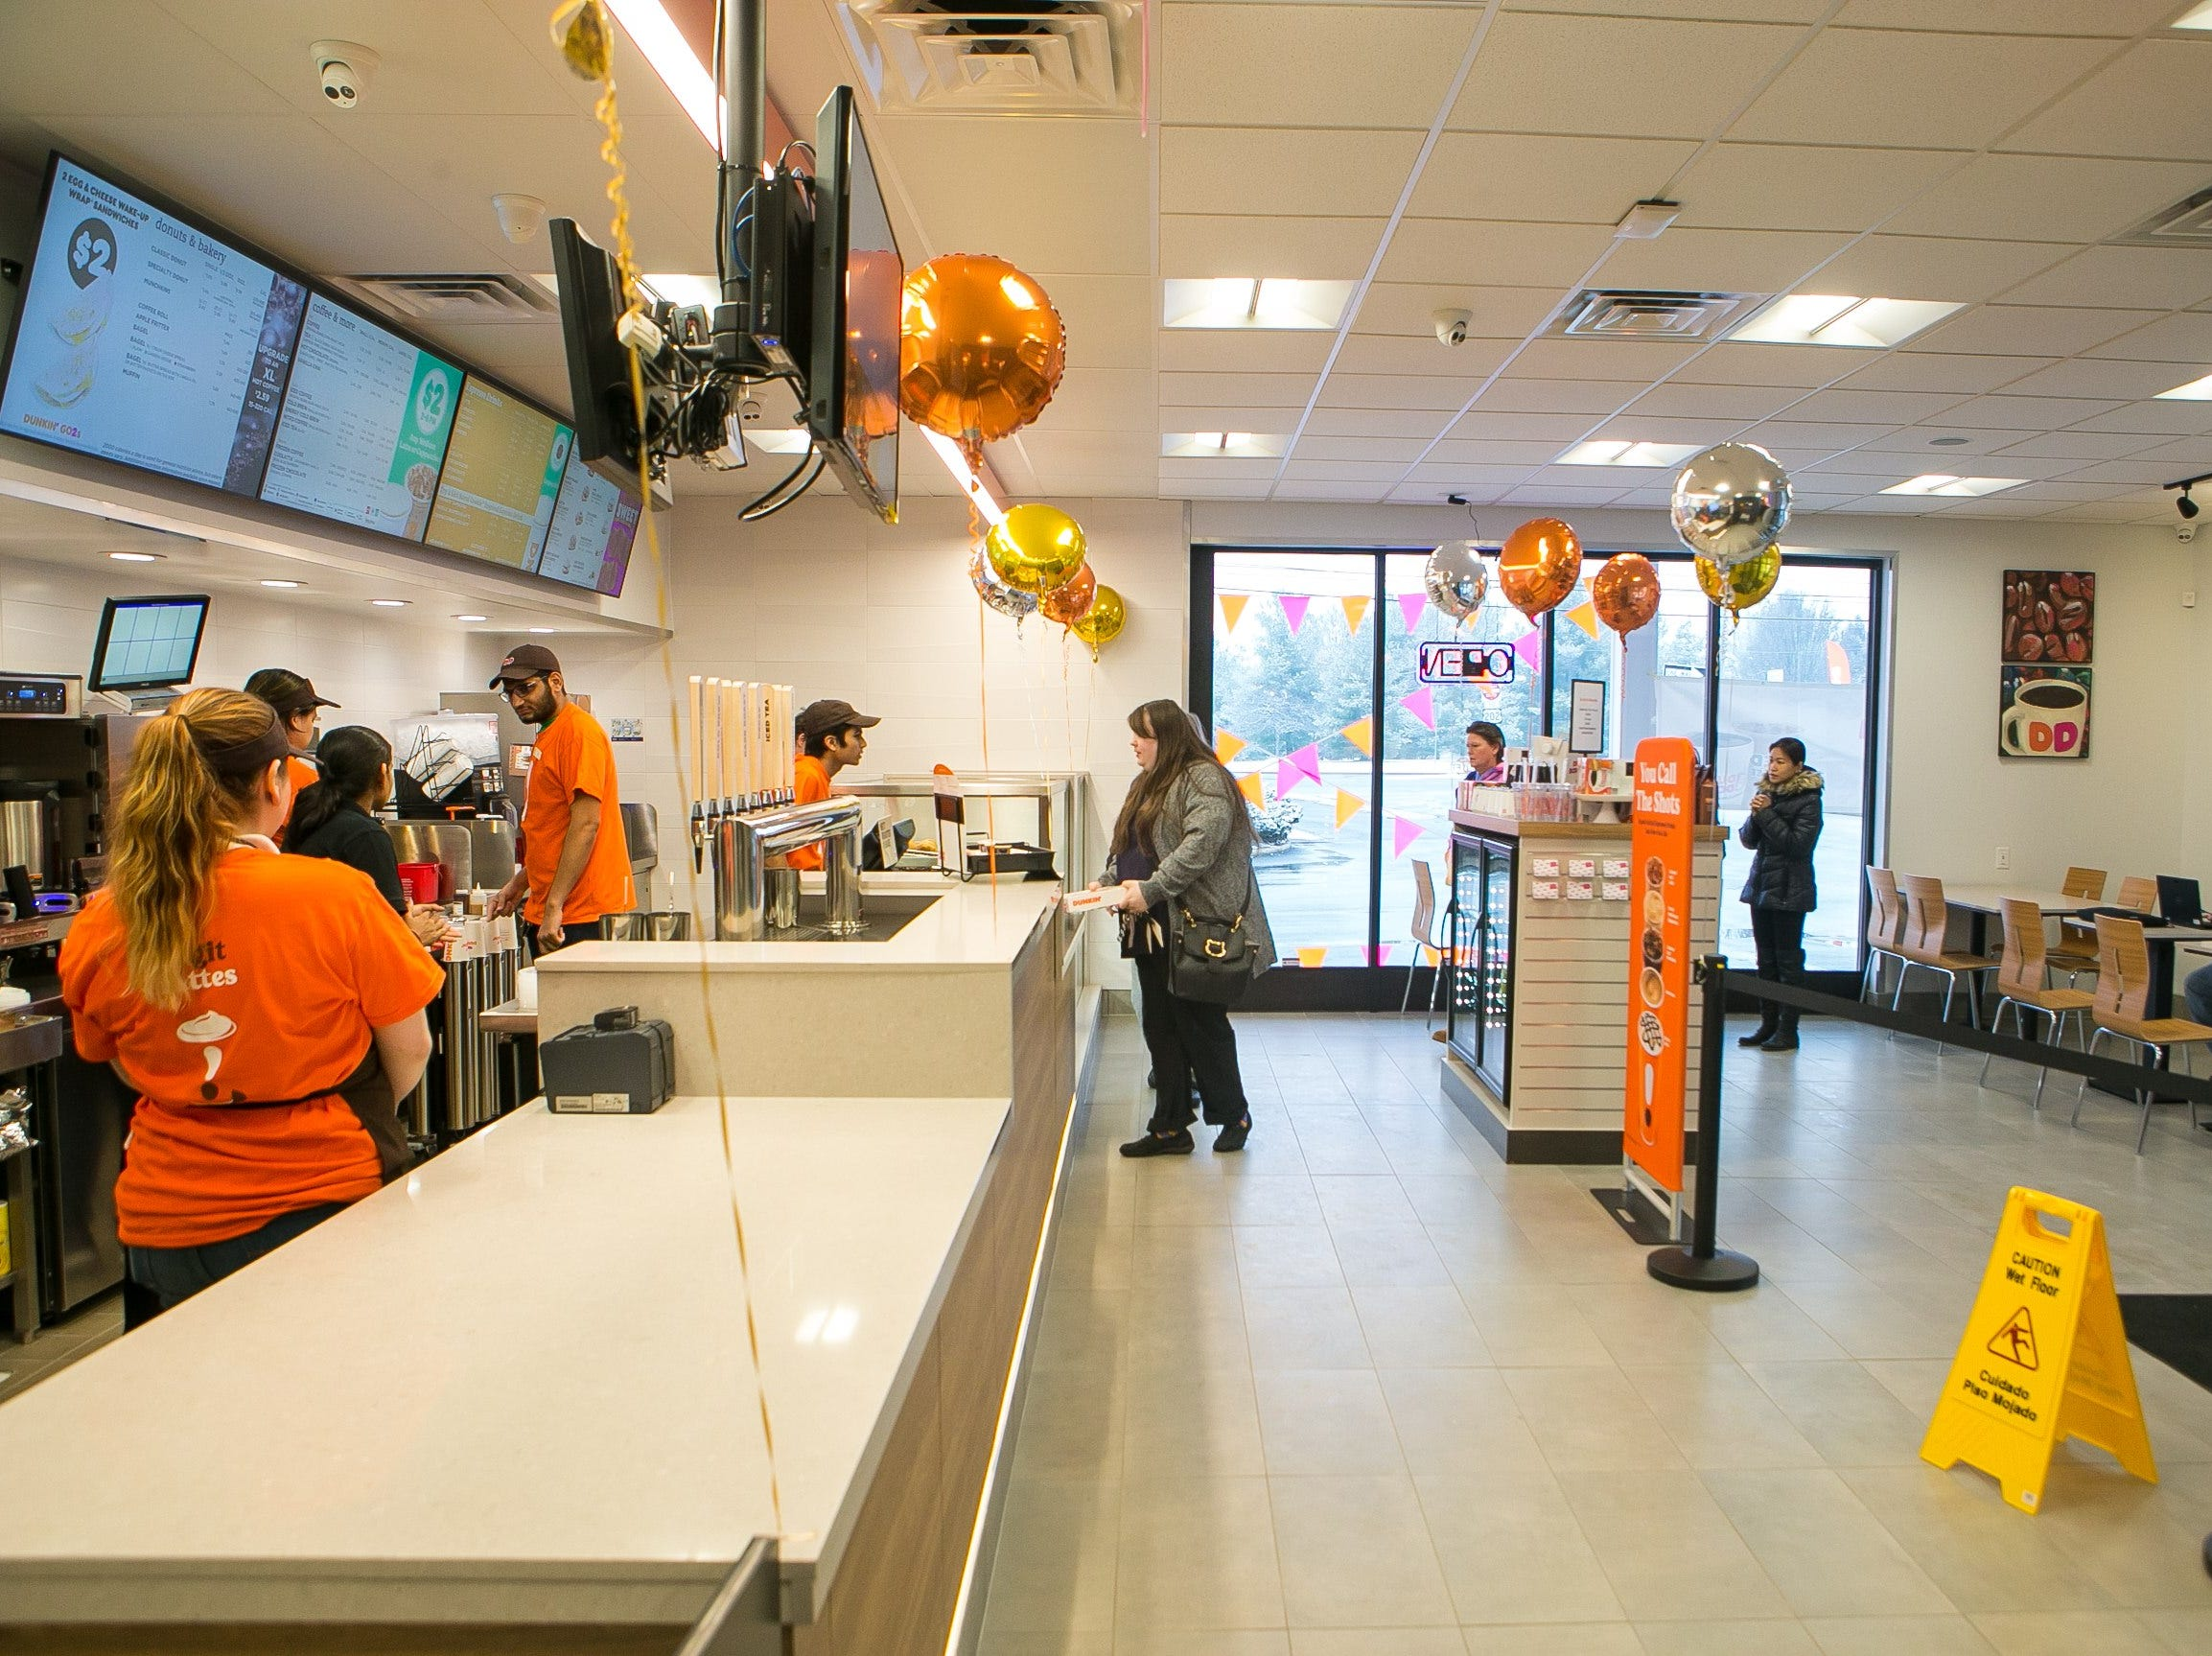 The Dunkin' chain, formerly known as Dunkin' Donuts, has opened one of its first new 'concept' stores today in north Wilmington.